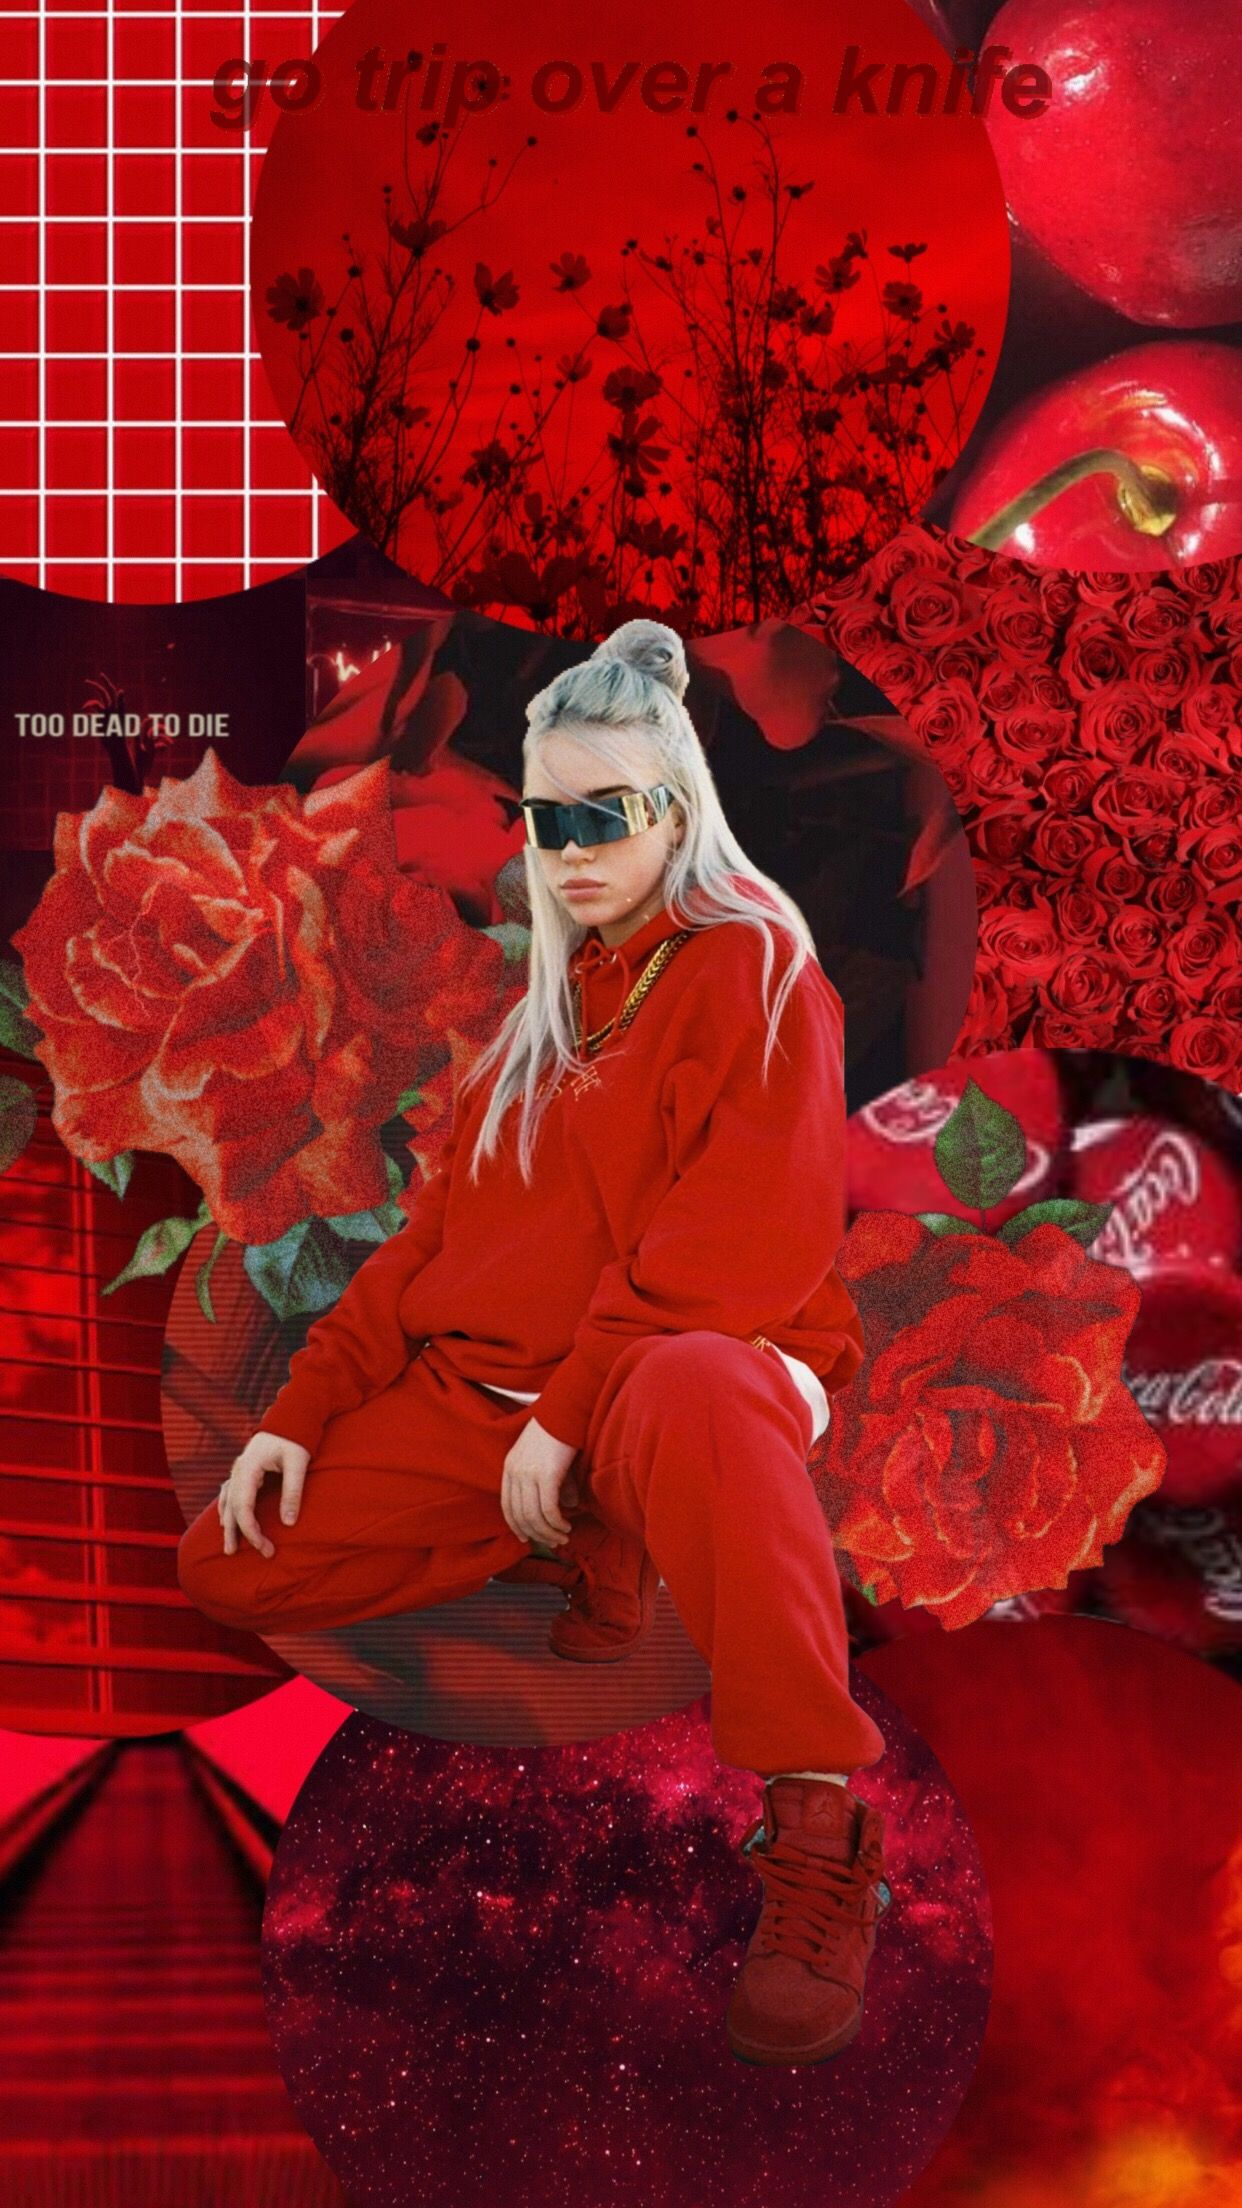 Made To Be Used As An Iphone Wallpaper Niche Art Background Edit Phonto Wallpaper Aesthetic Relateable Nichelove Red Aesthetic Billie Eilish Billie